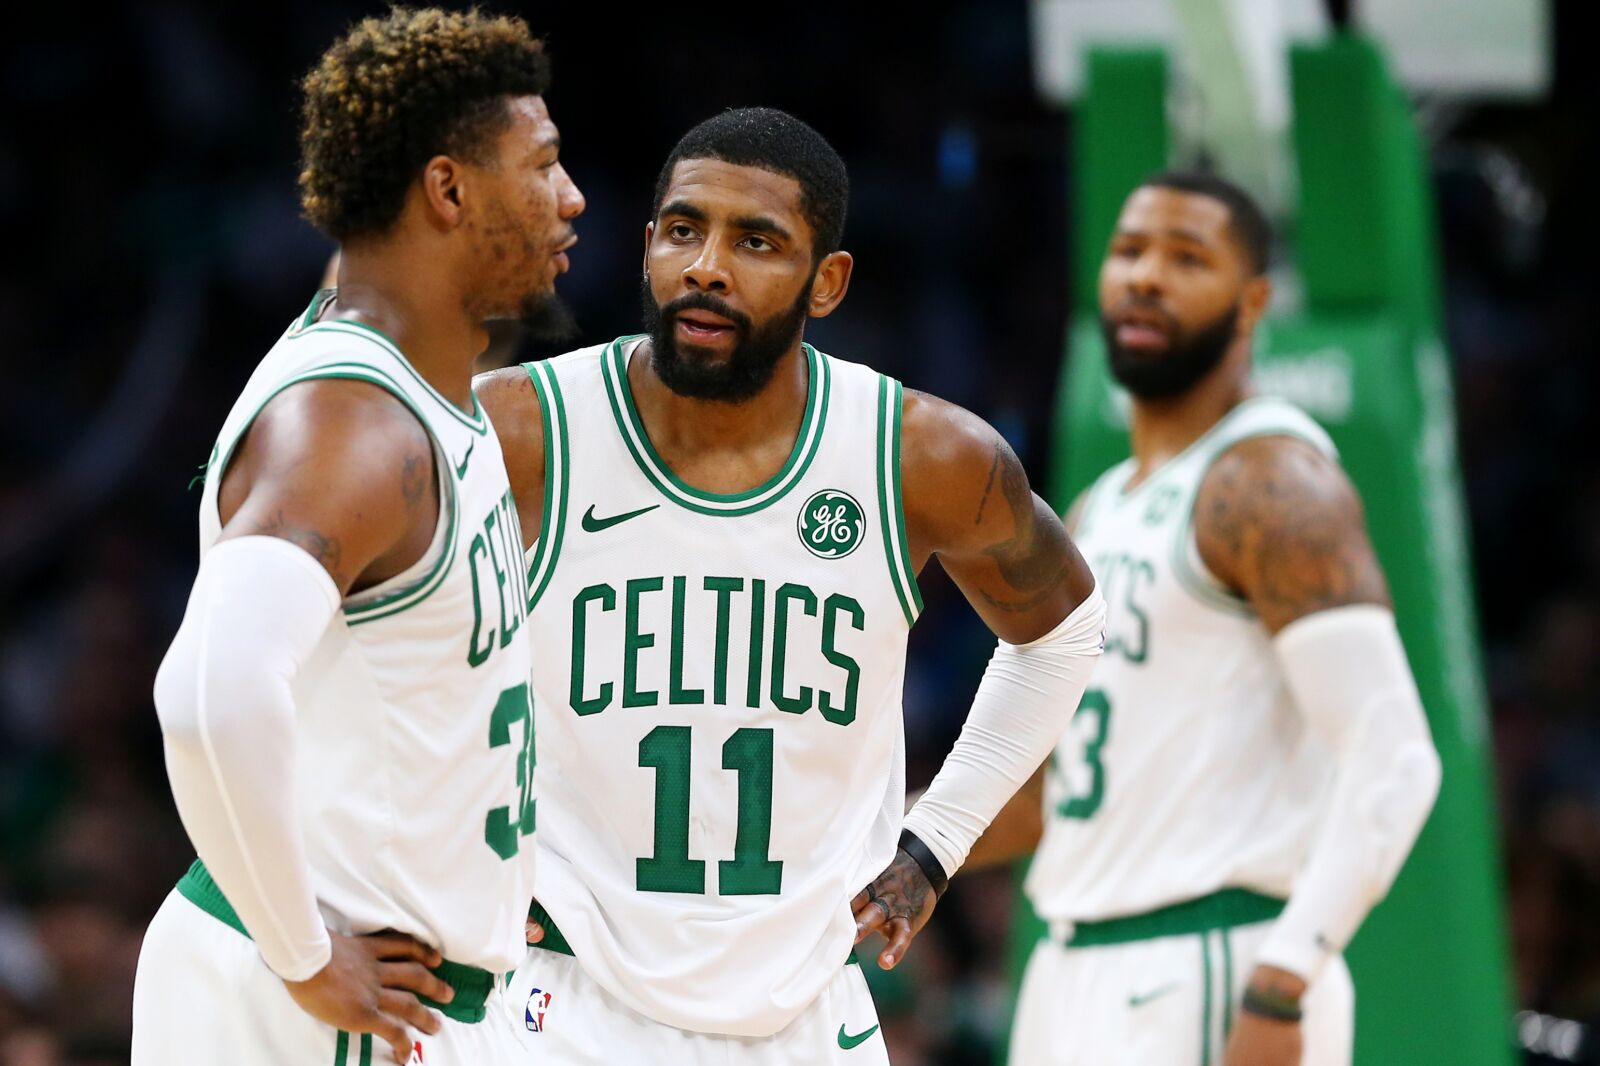 2b5be339a Kyrie Irving  Comments about calling LeBron could hurt team chemistry